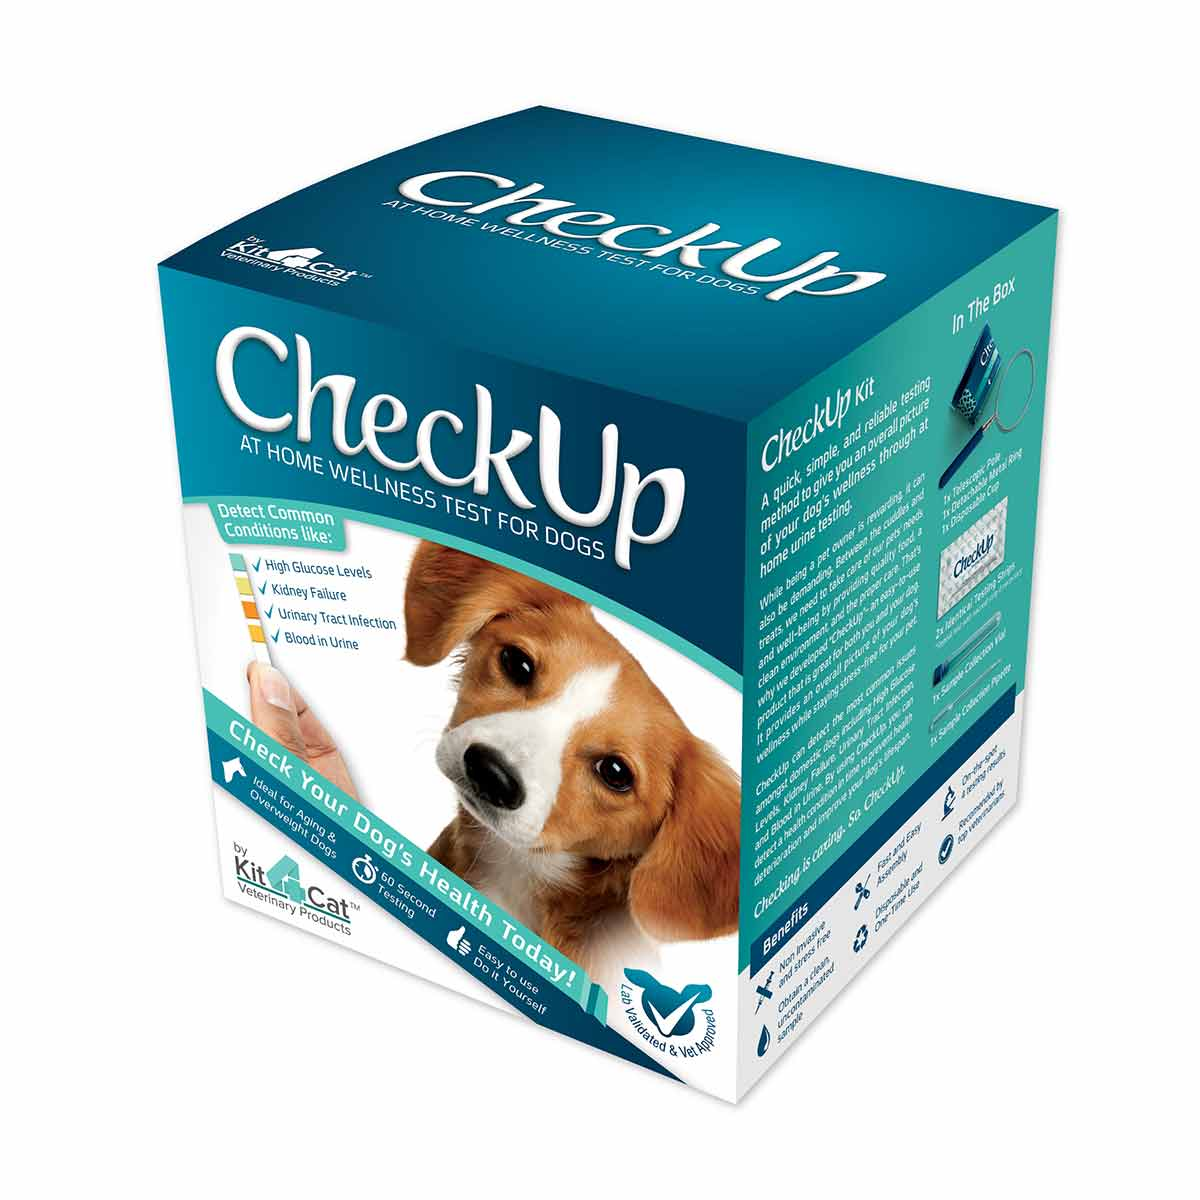 Coastline Global Checkup - At Home Wellness Test for Dogs Dog Wellness - London the Local